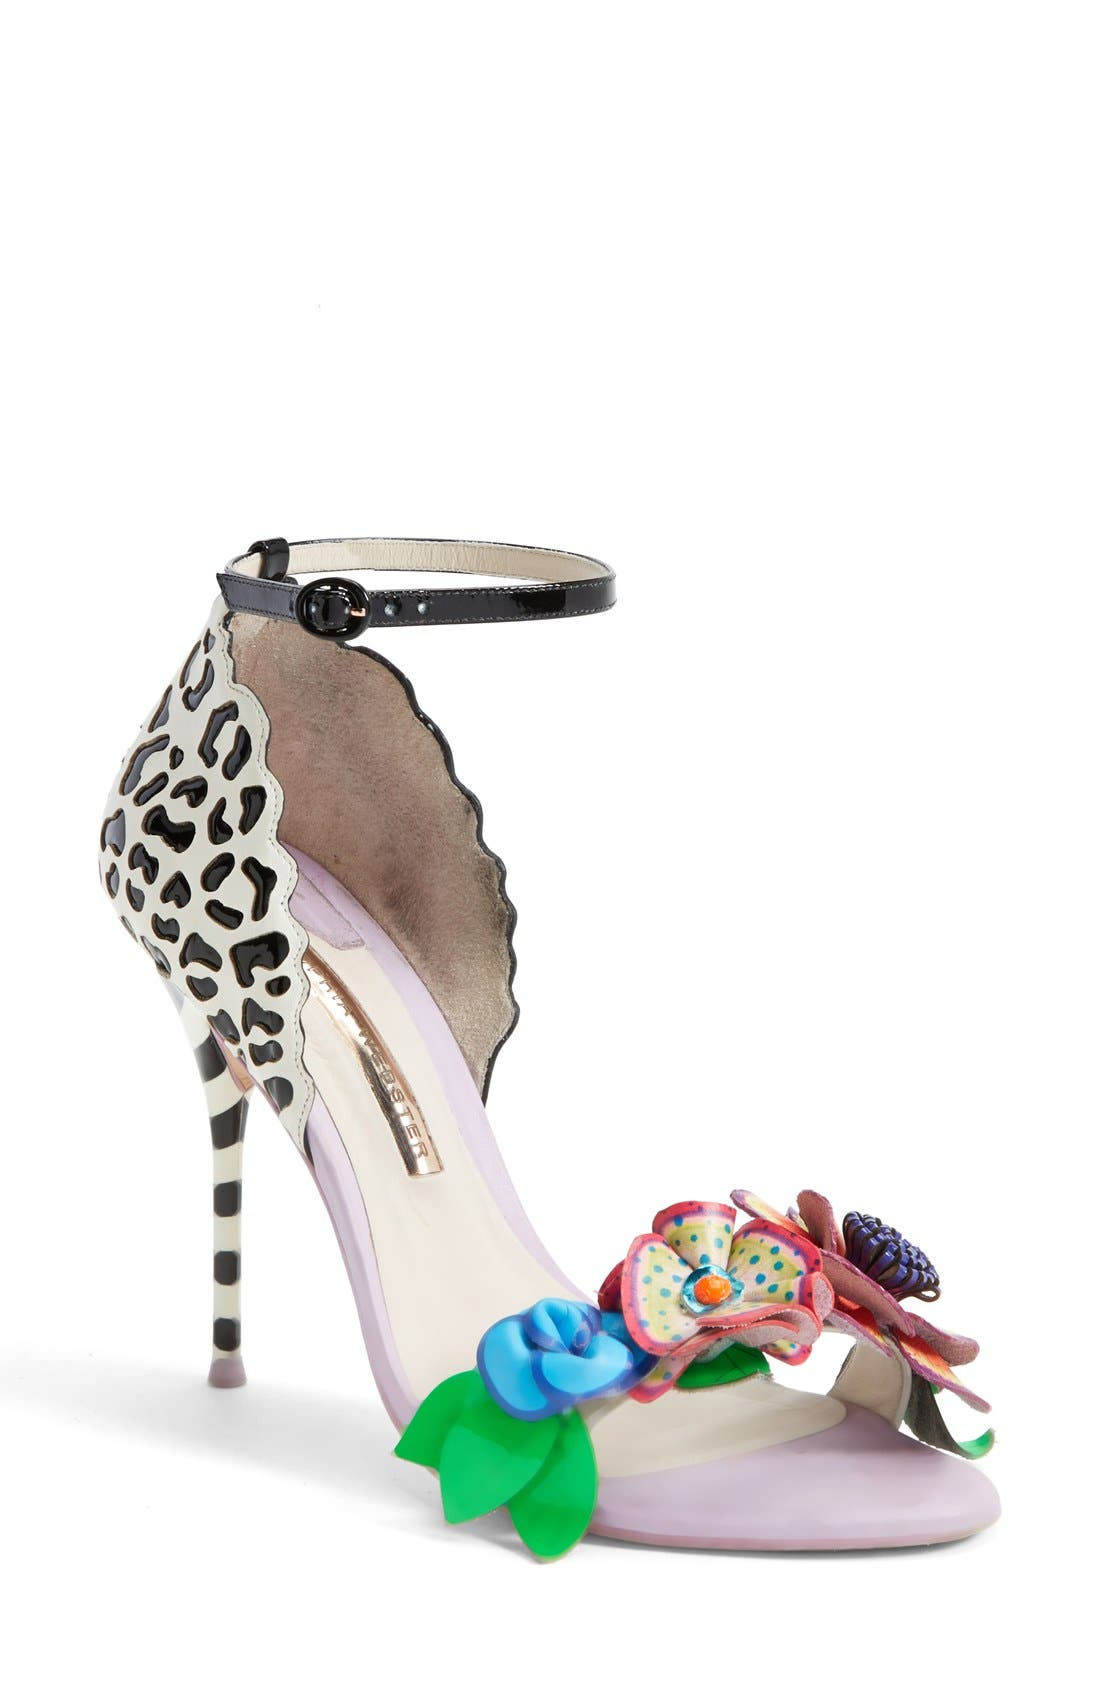 Alternate Image 1 Selected - Sophia Webster 'Lilico - Jungle' Sandal (Women)